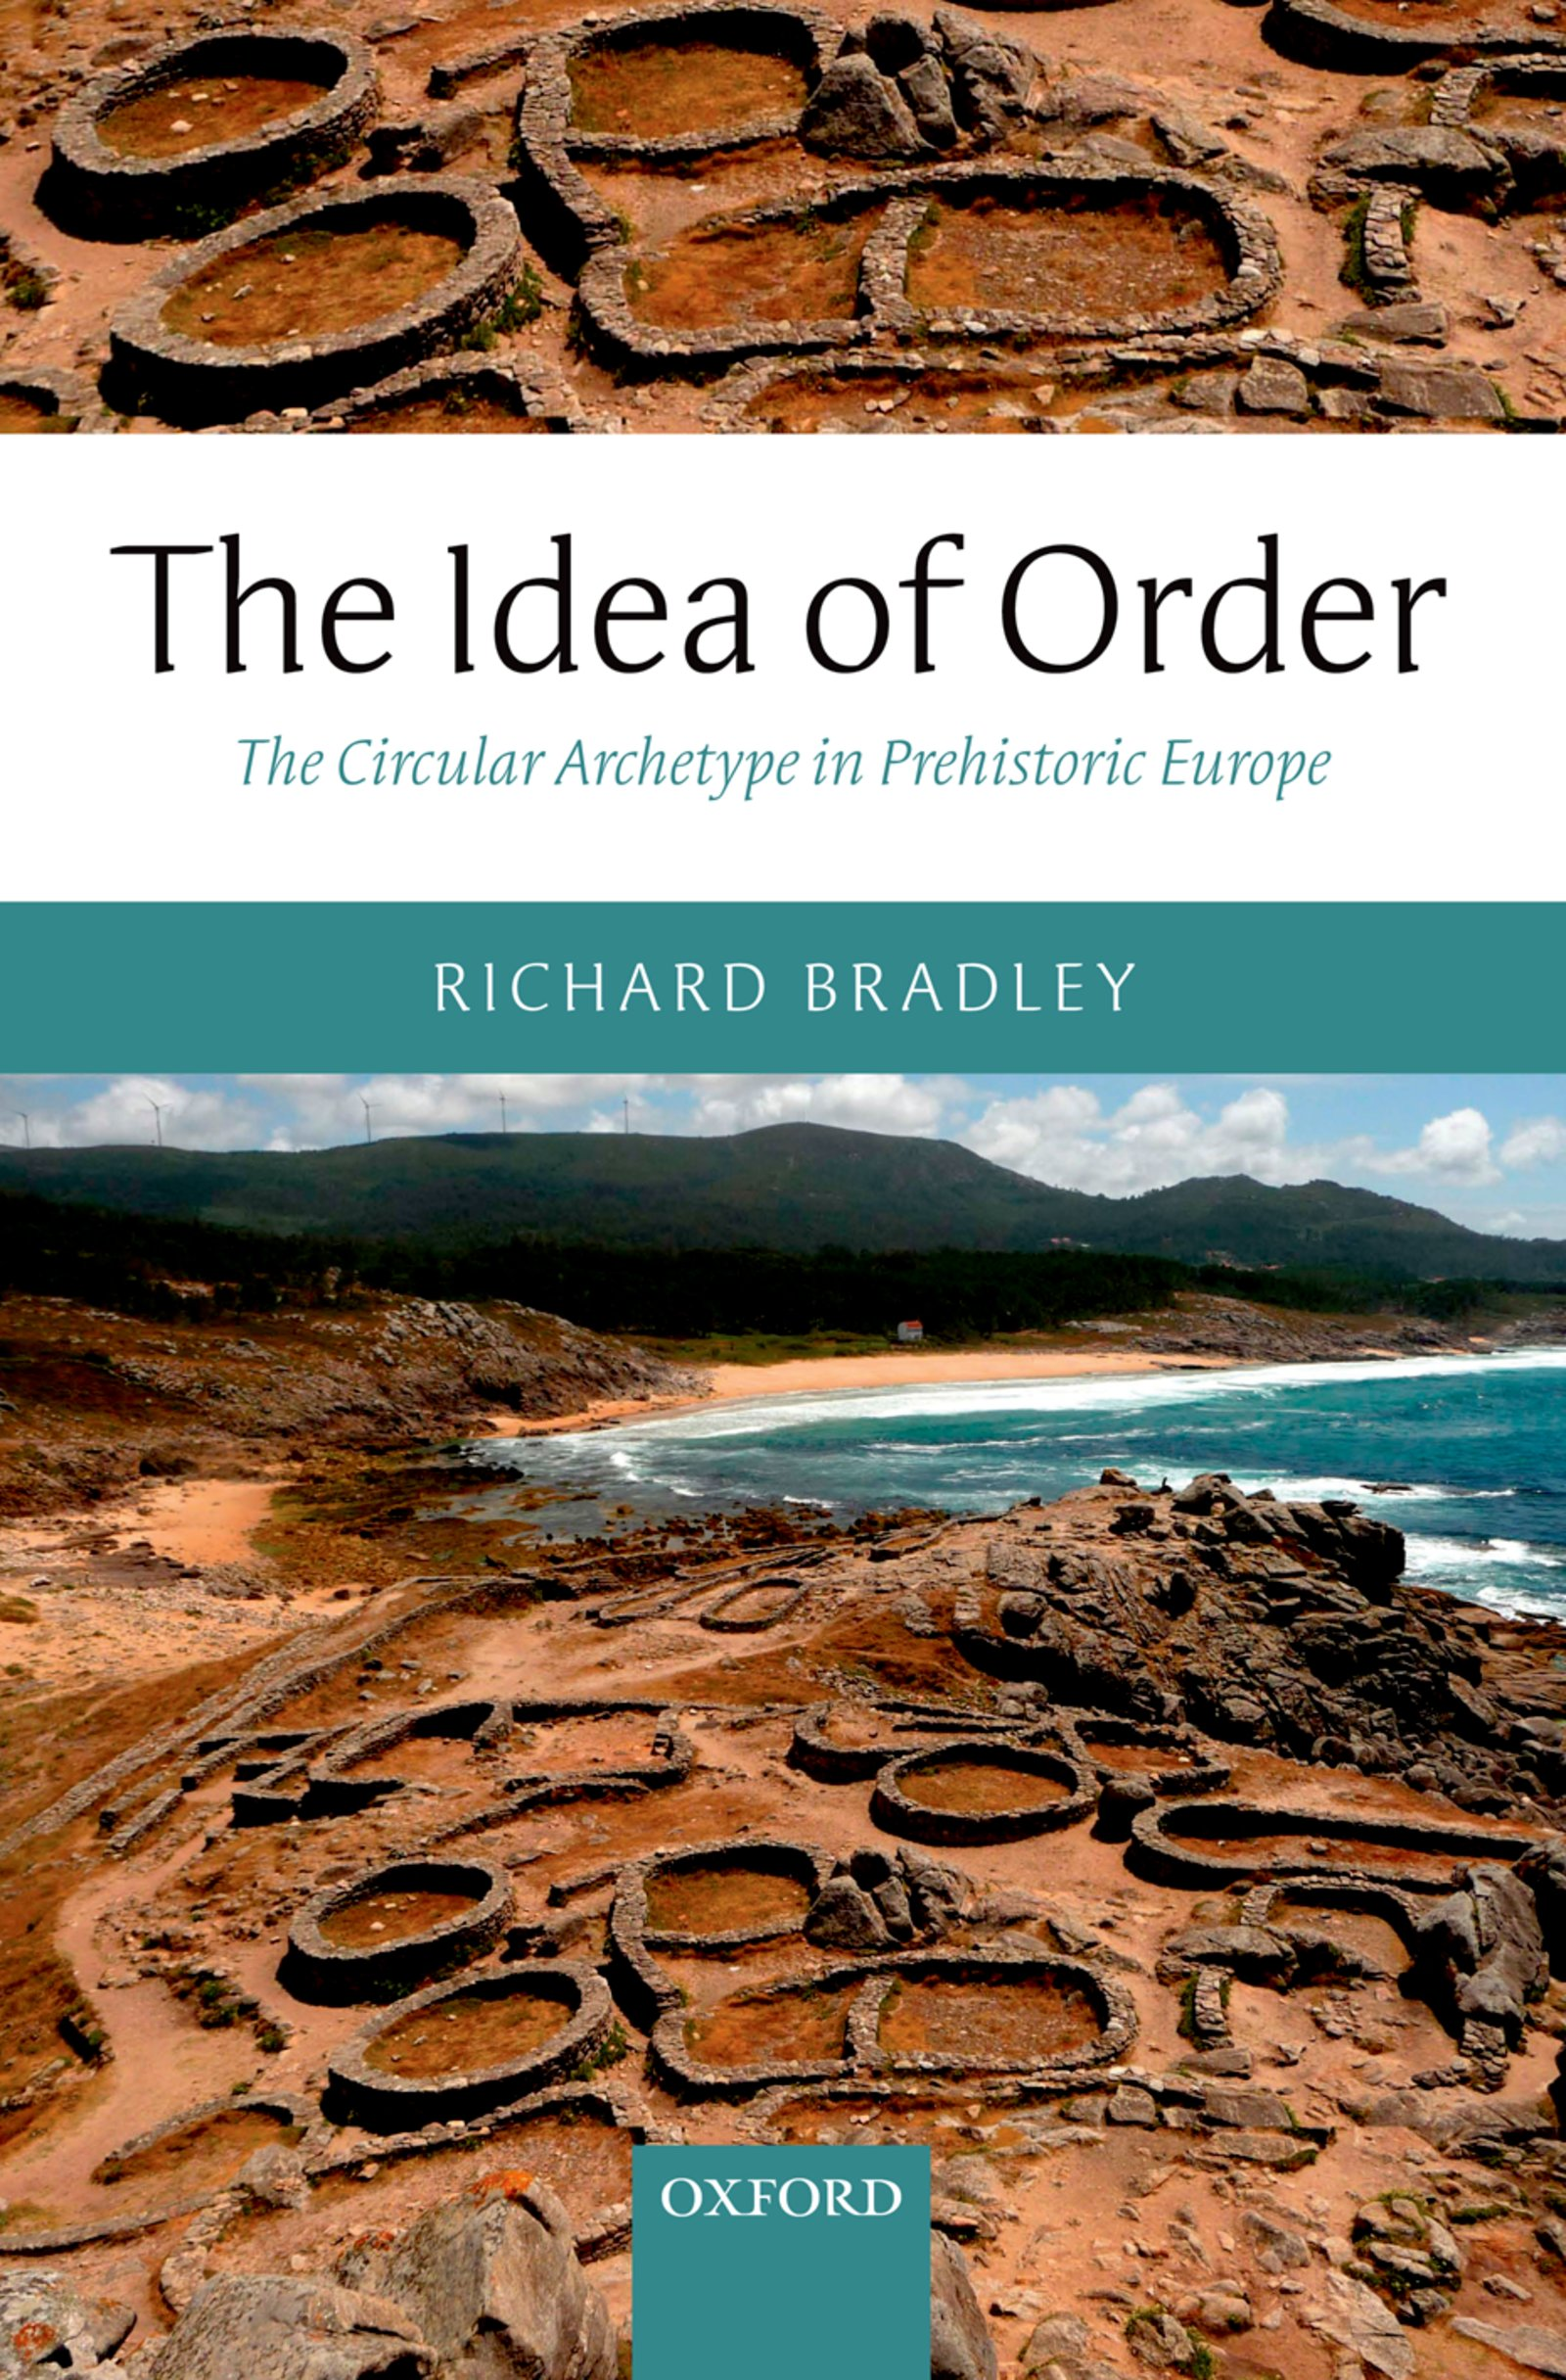 The Idea of OrderThe Circular Archetype in Prehistoric Europe